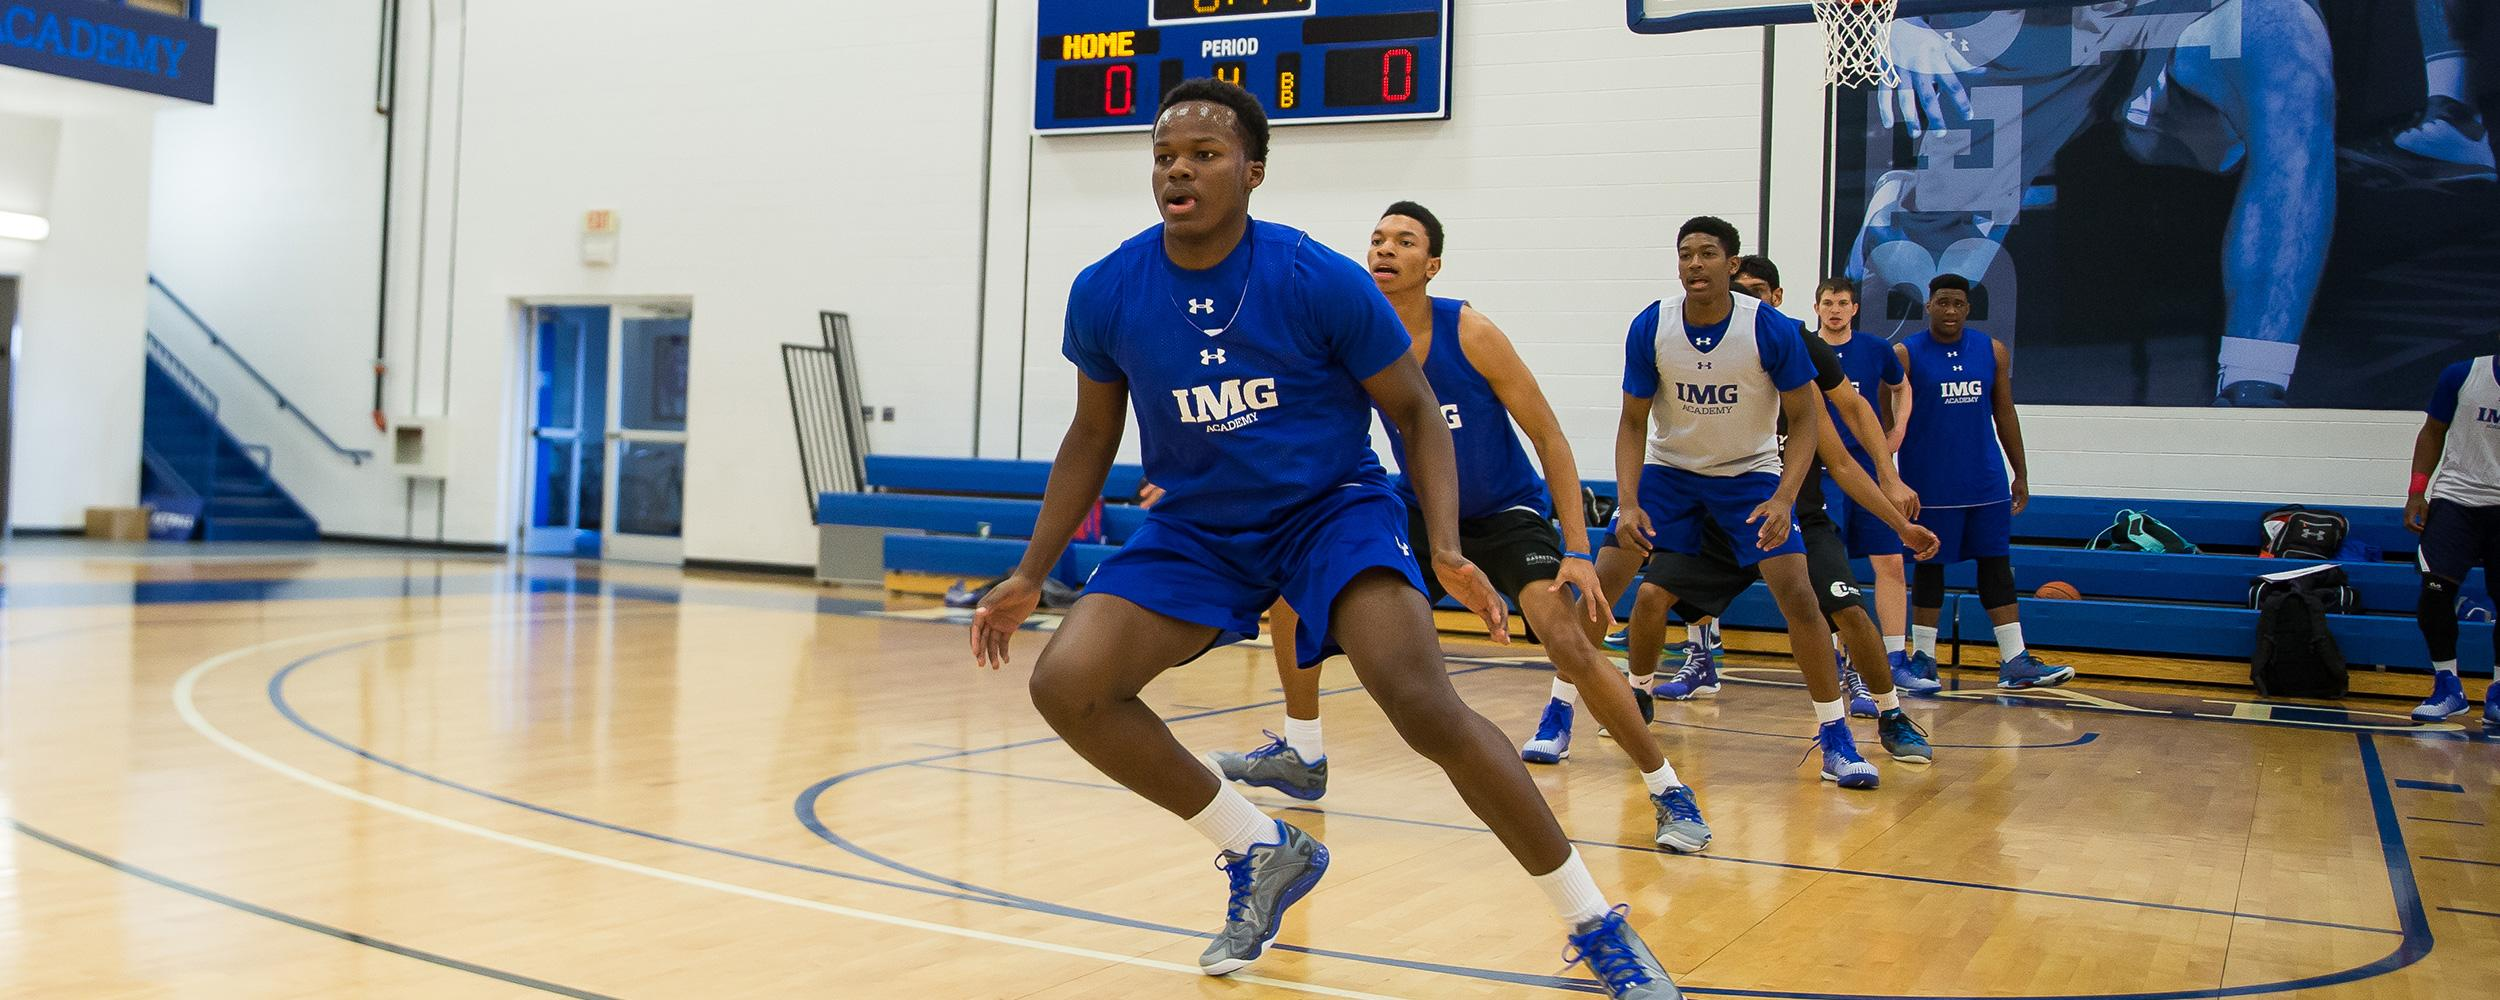 Img: IMG Academy Basketball Camps